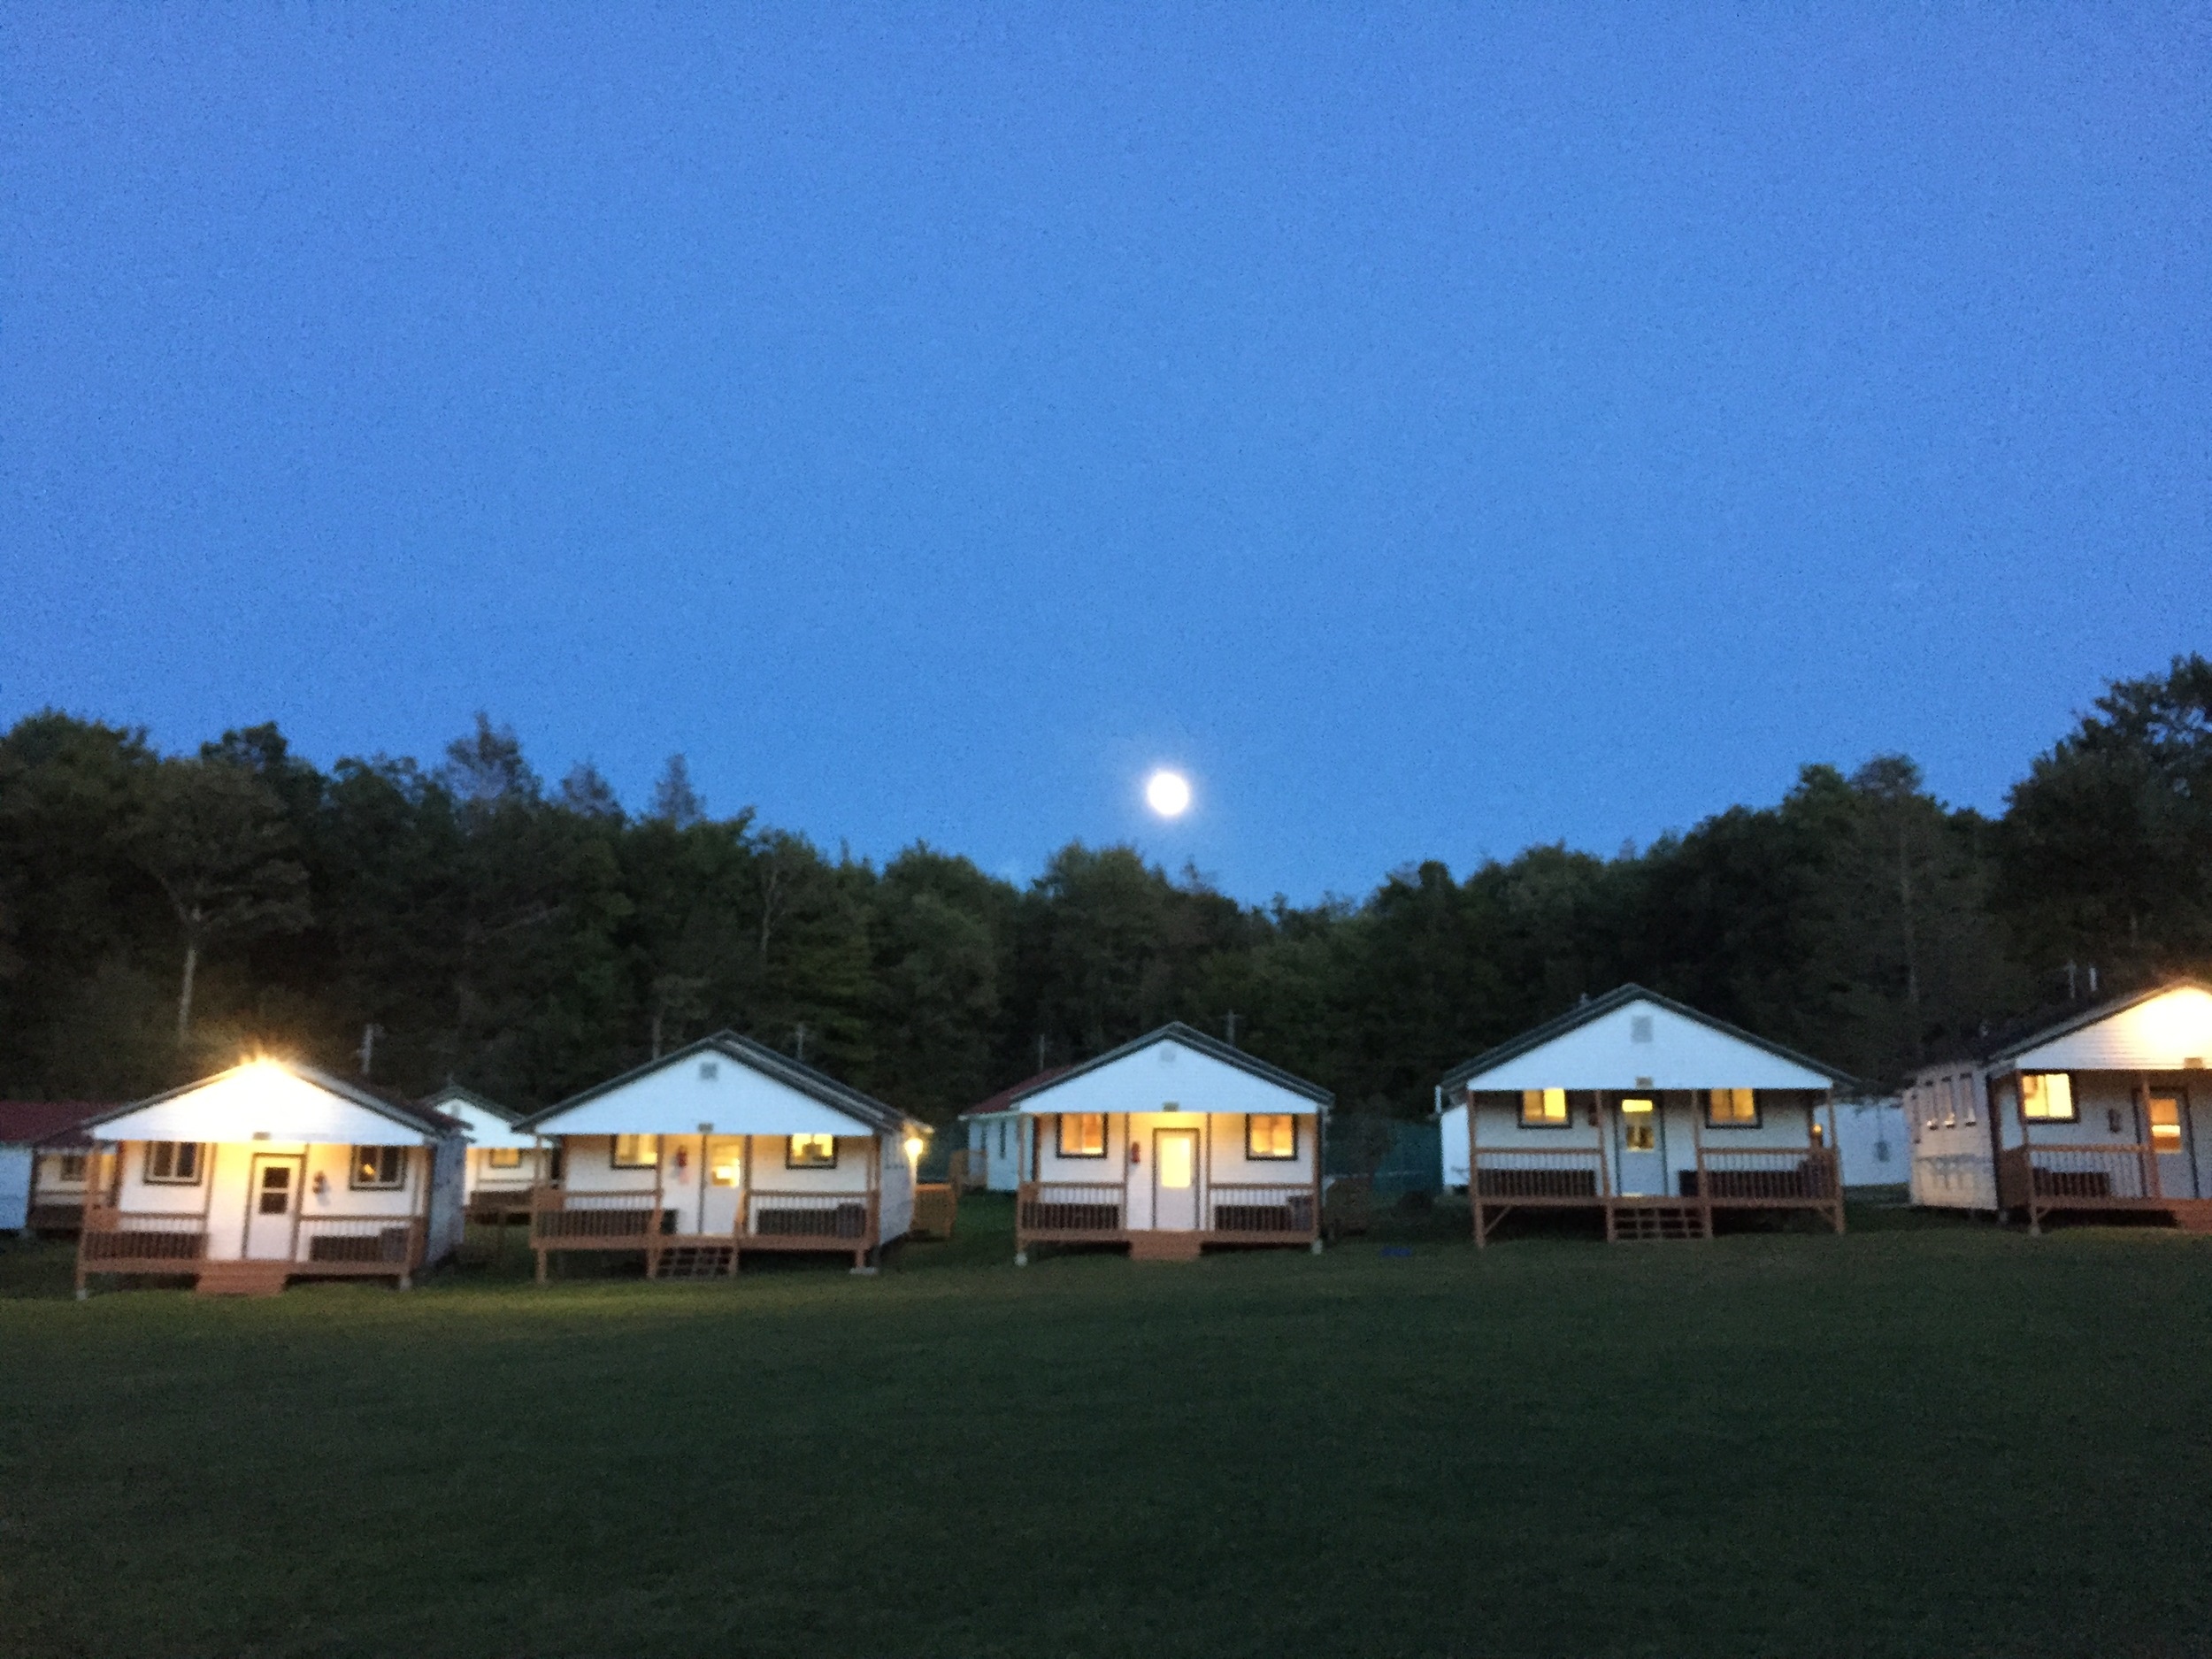 Camp GLP under the moonlight